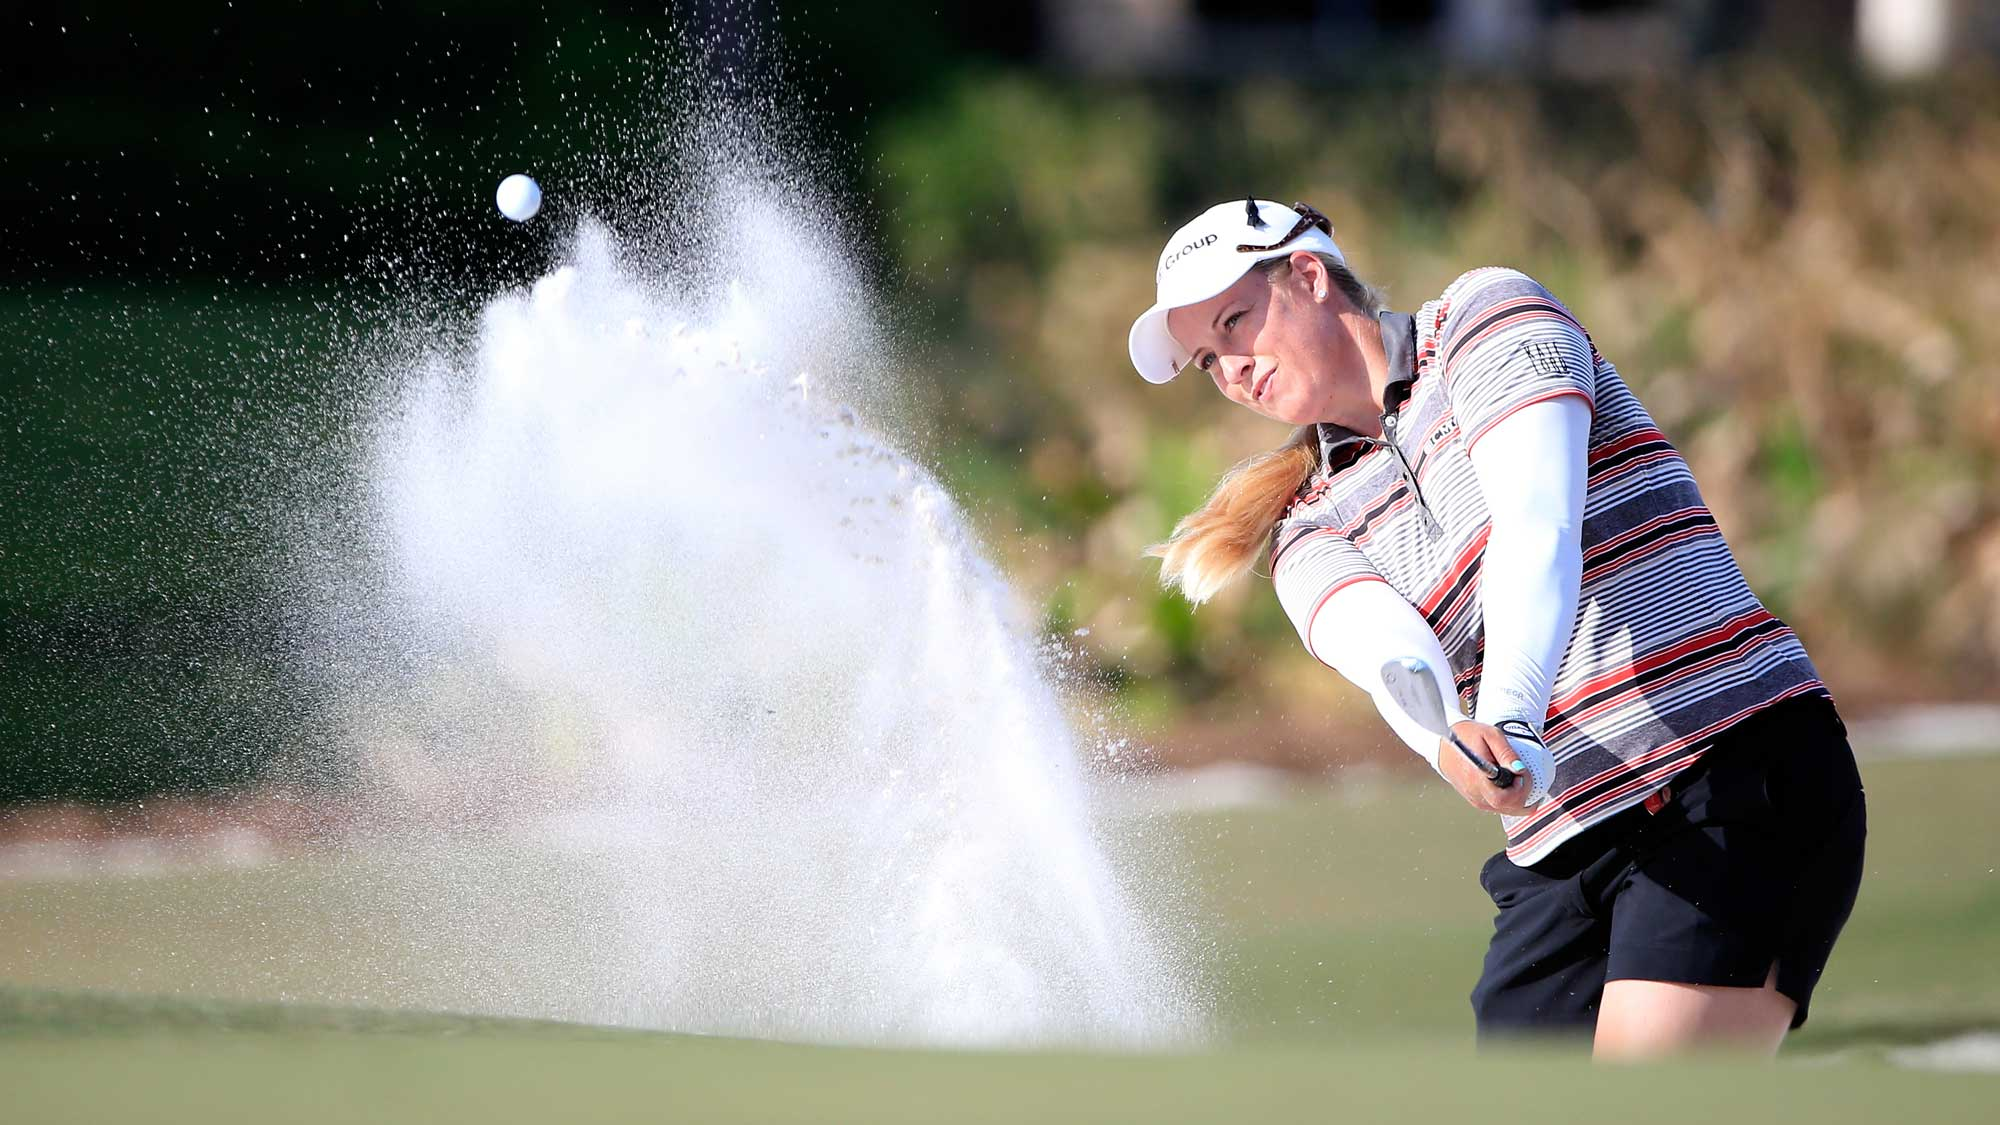 Brittany Lincicome of the United States plays a shot on the 17th hole during the second round of the CME Group Tour Championship at Tiburon Golf Club